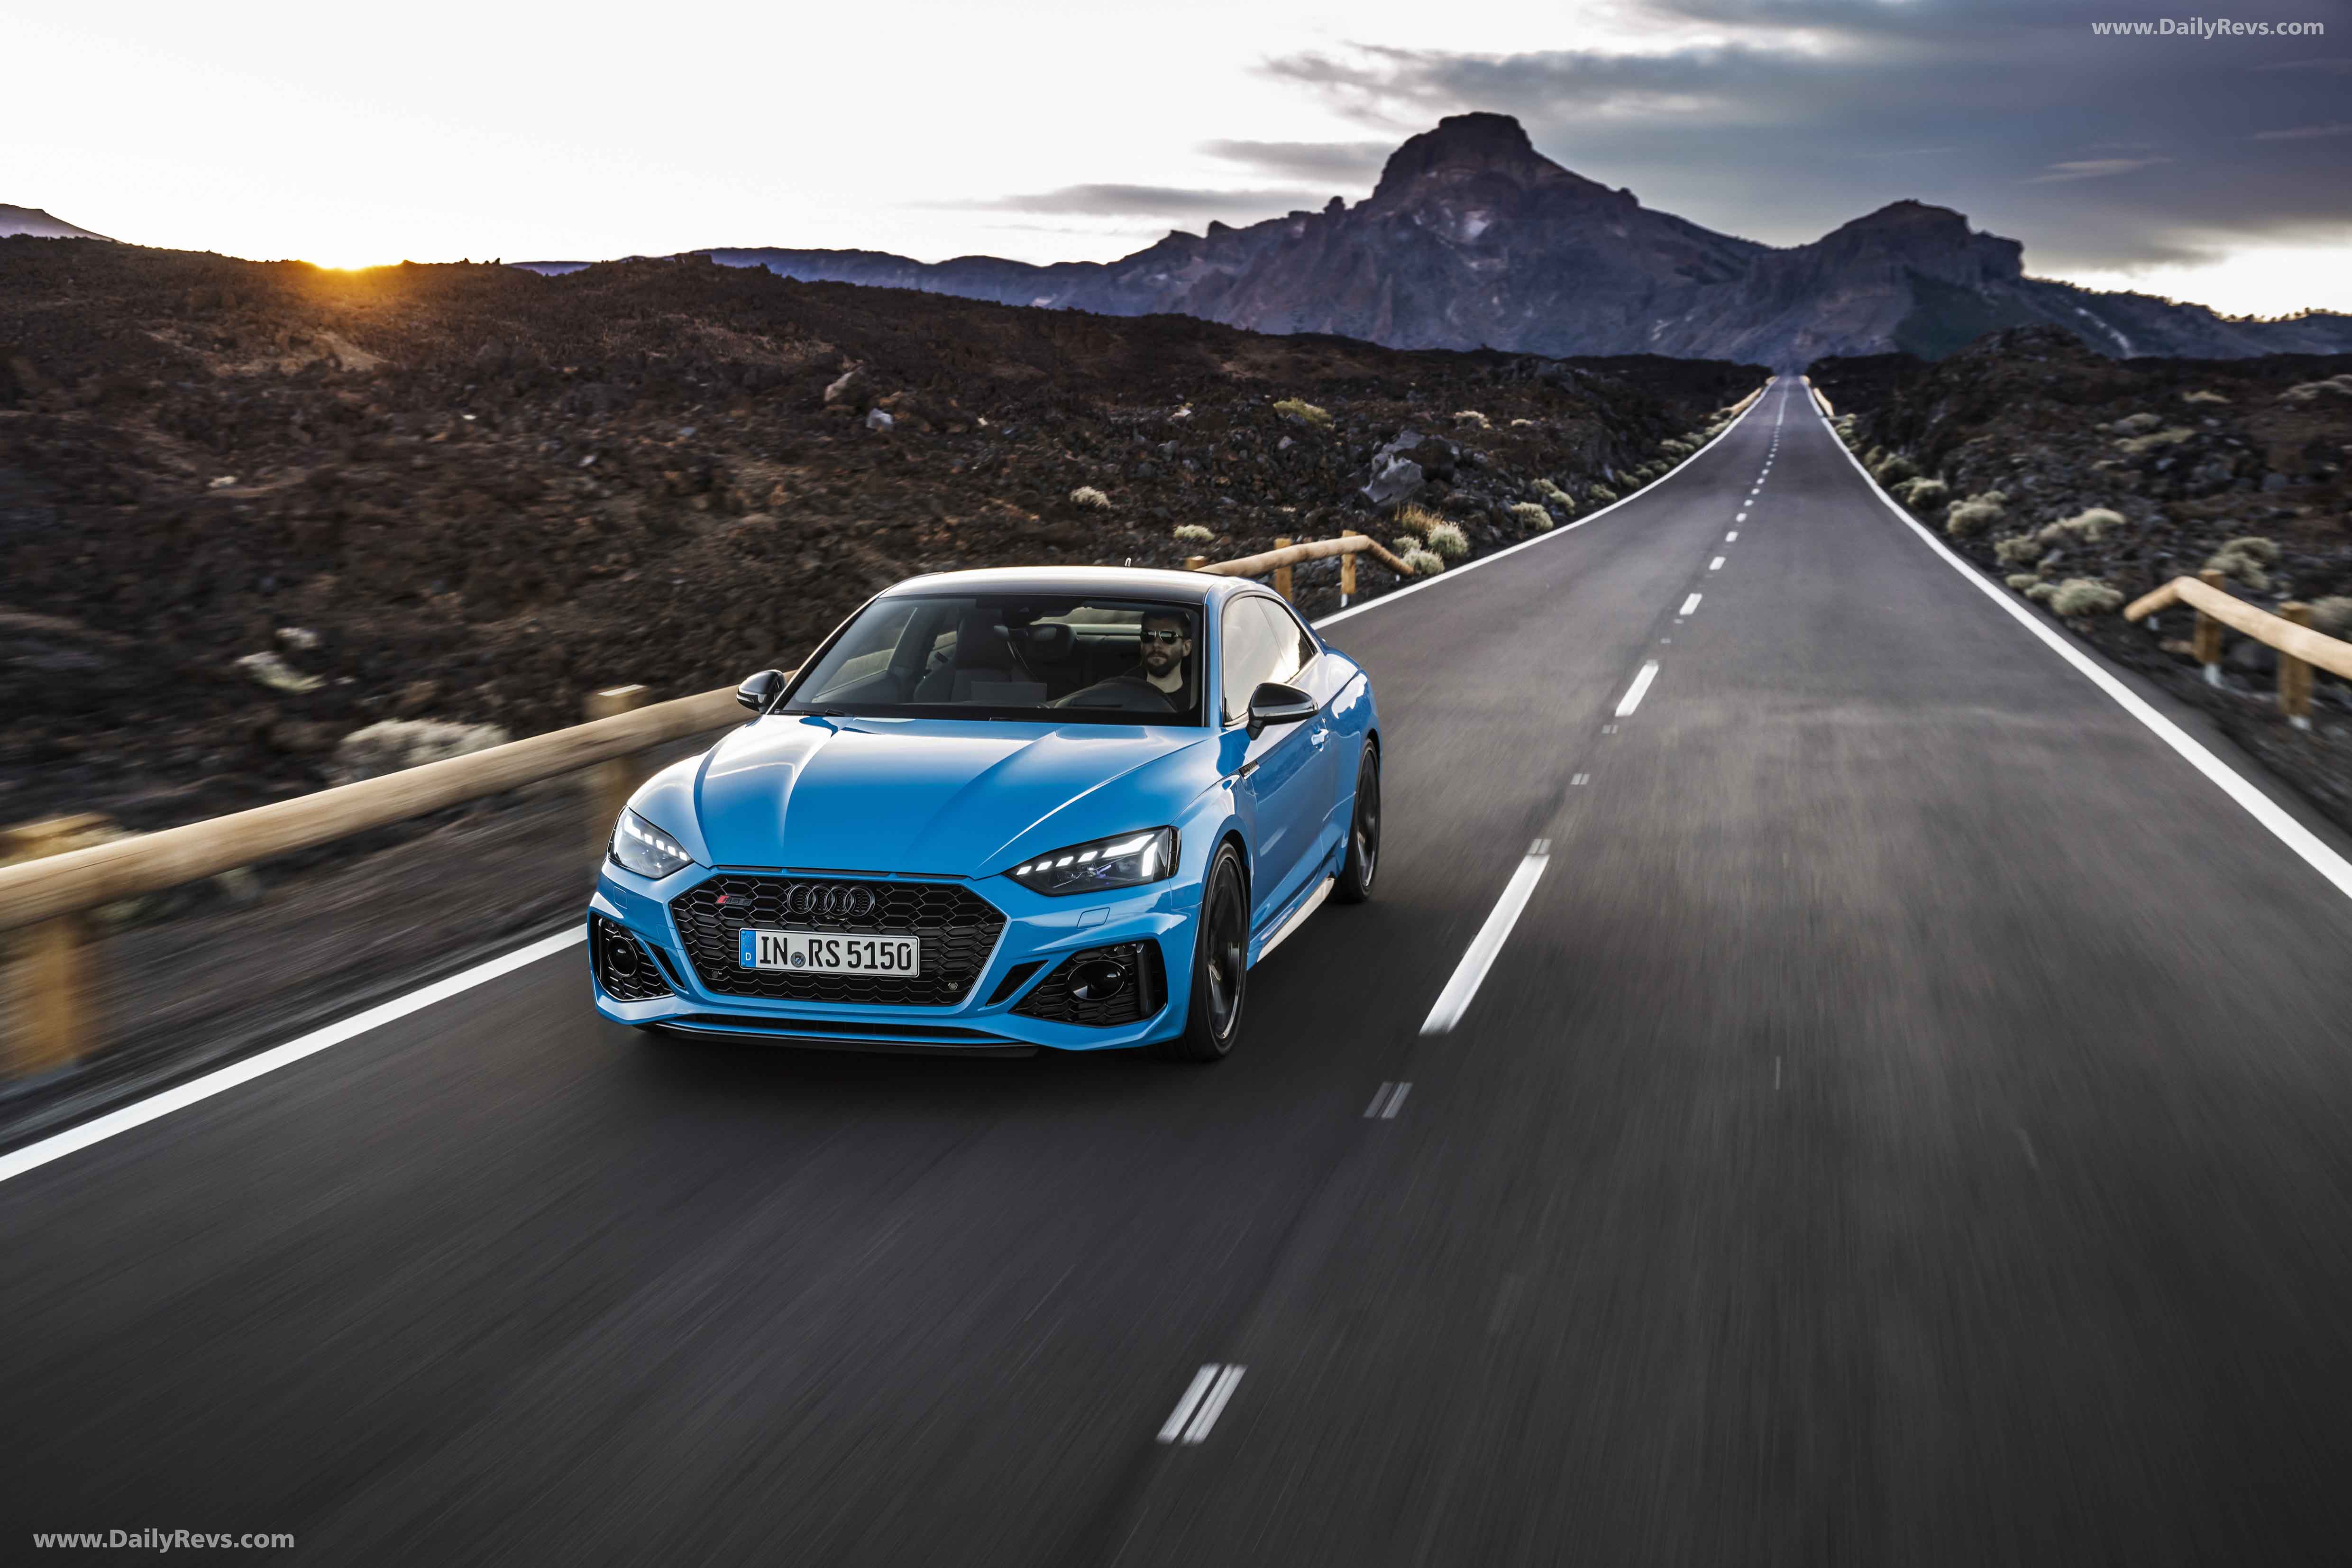 2020 Audi RS5 Coupe full